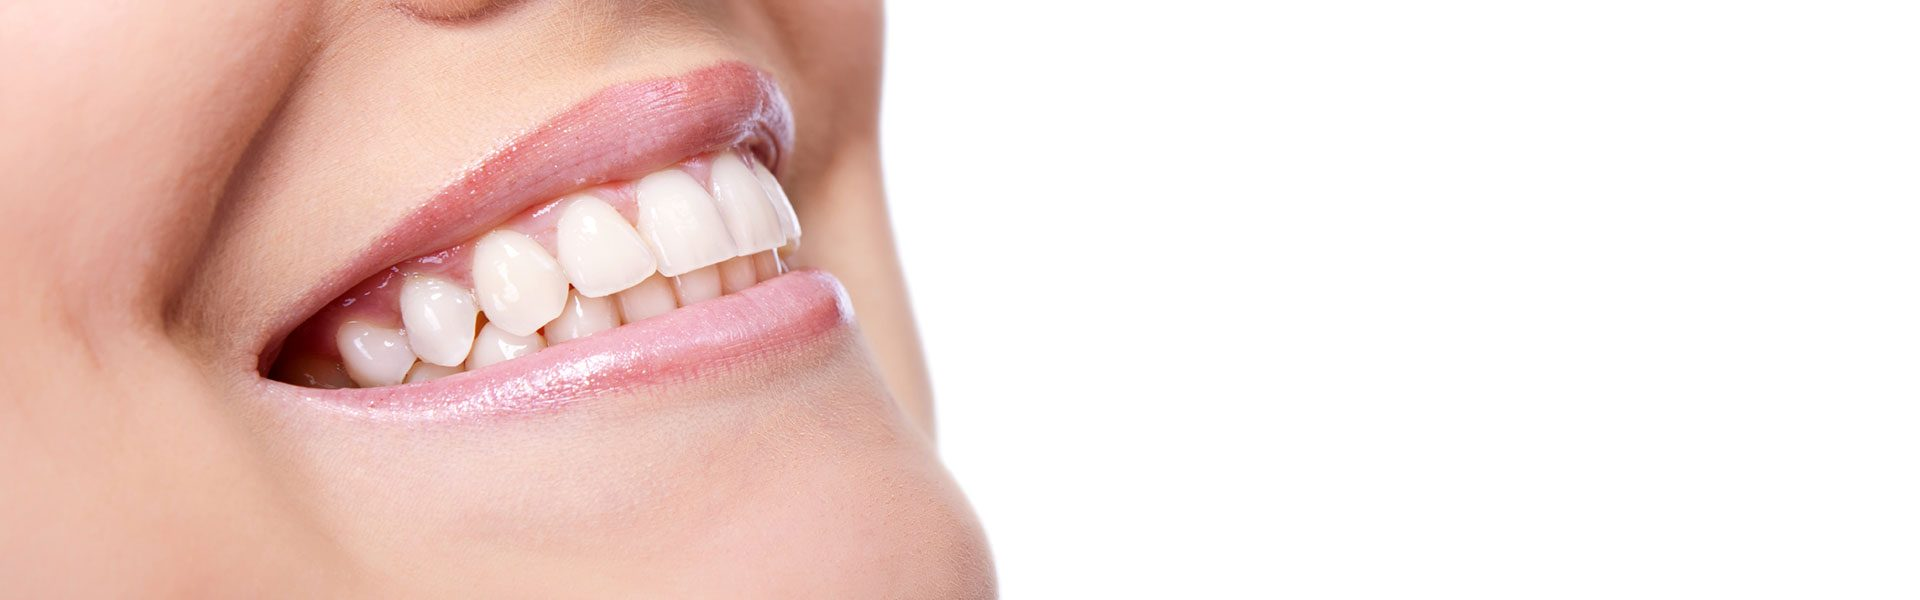 Fluoride Treatments for Adults: Are They Necessary?